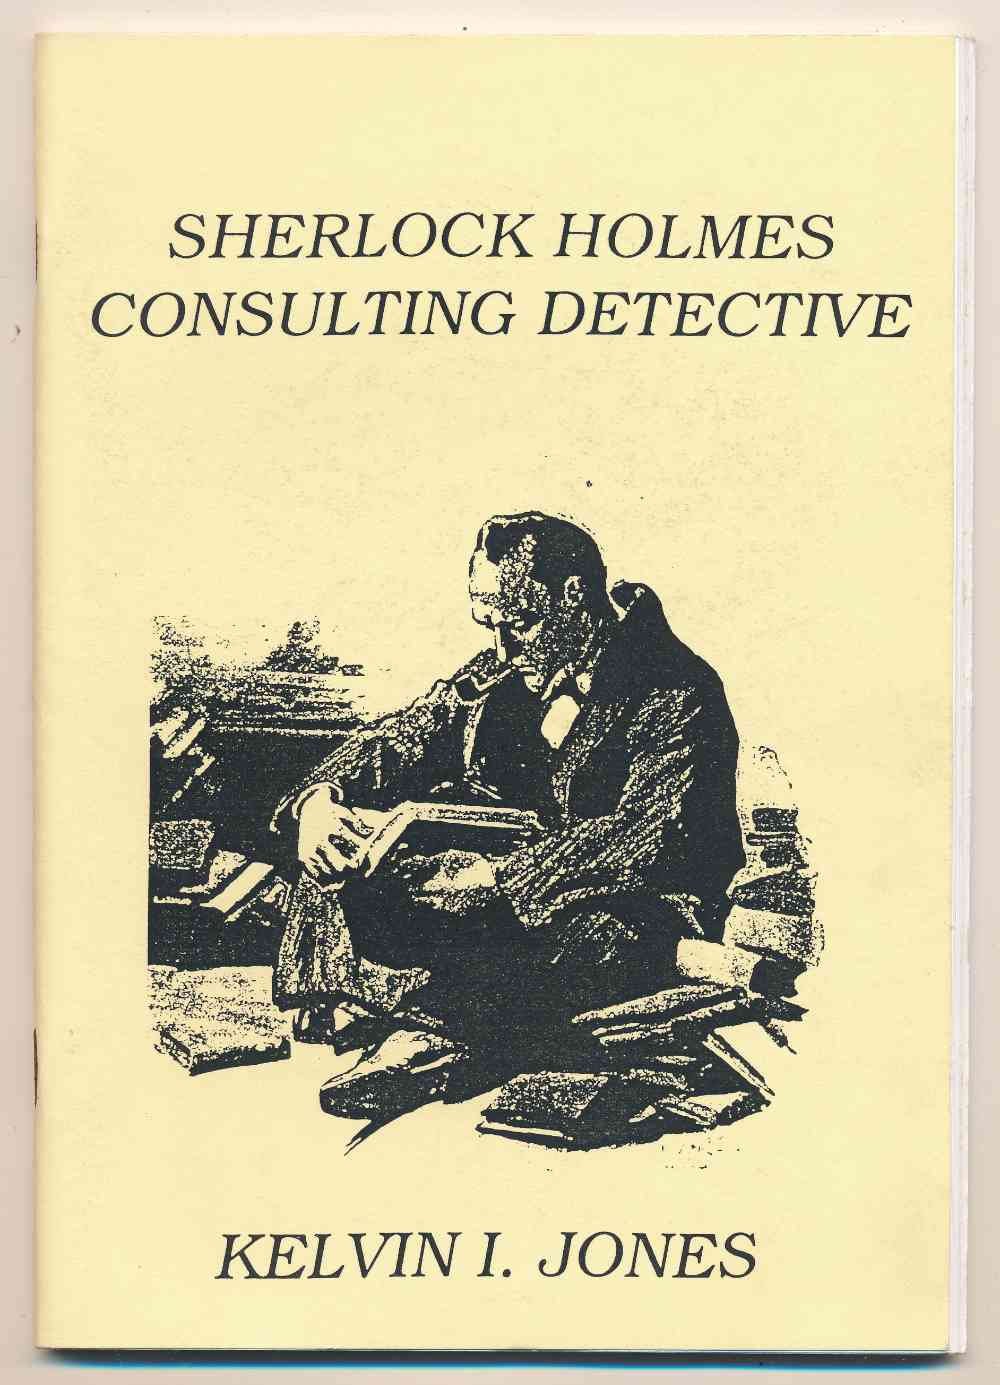 Sherlock Holmes consulting detective. Volume 2 : explorations